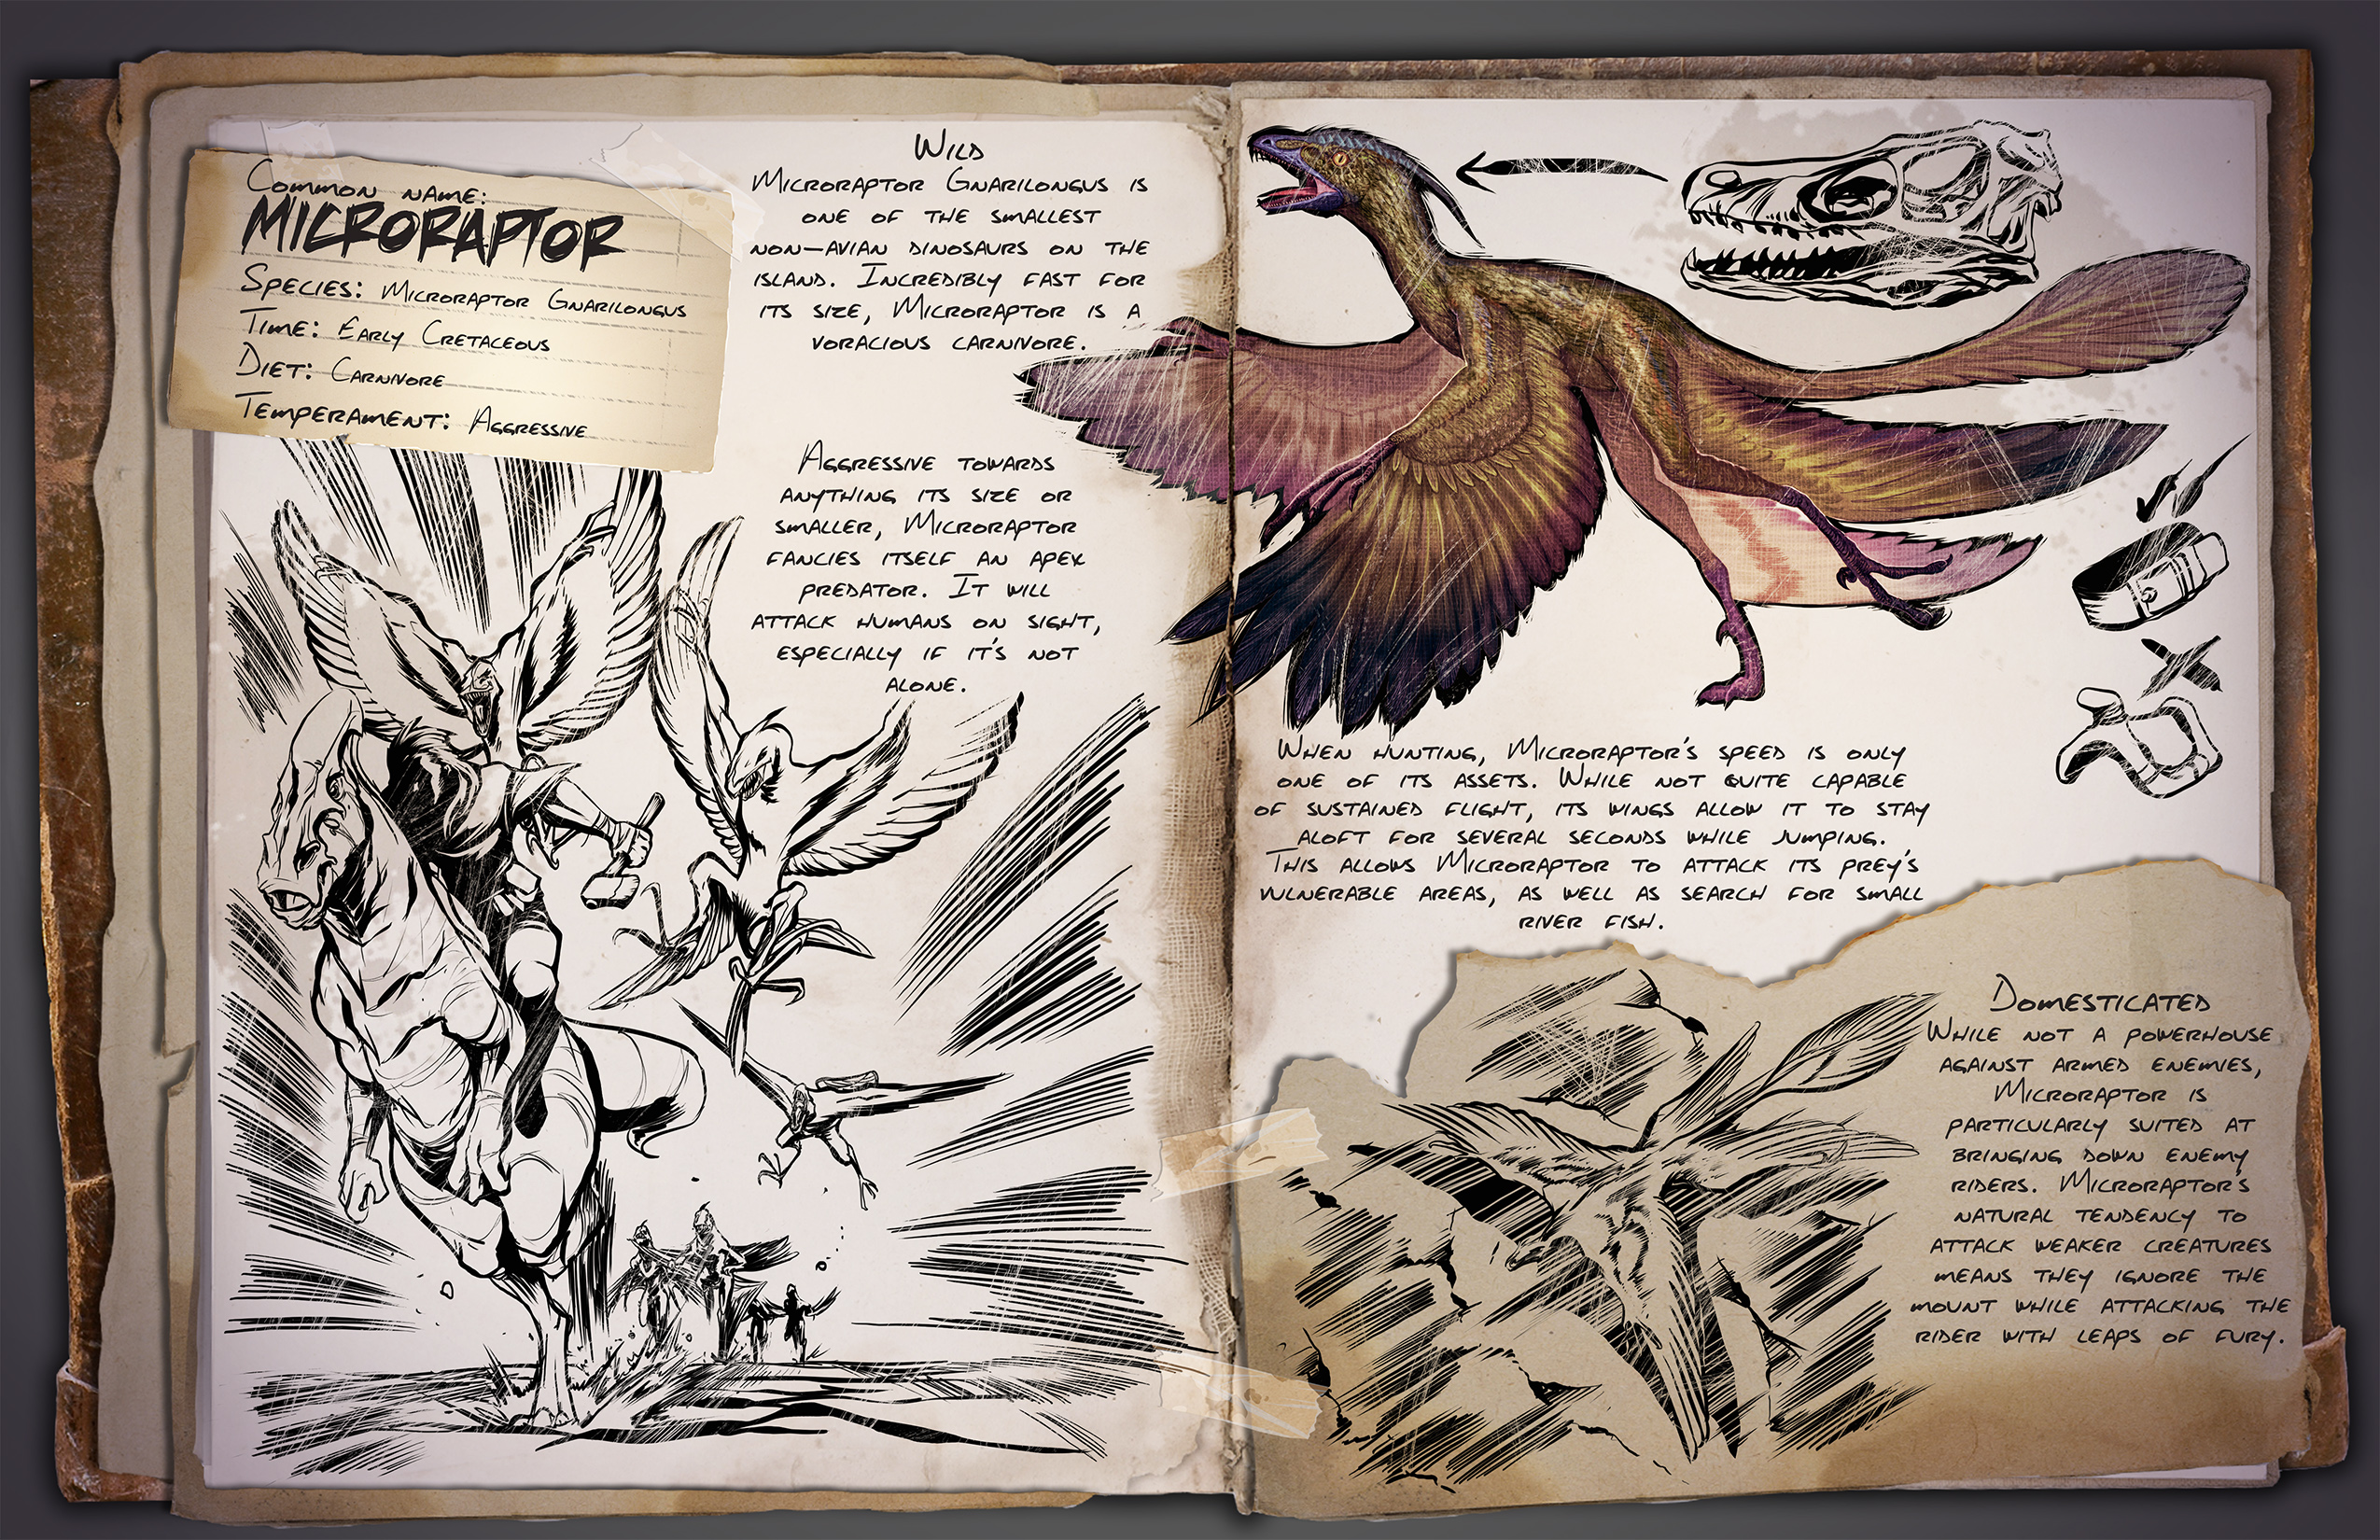 Ark survival evolved patch notes - A New Dino Dossier Has Been Revealed This One Is Everyone S Favorite Small And Speedy Carnivore The Microraptor